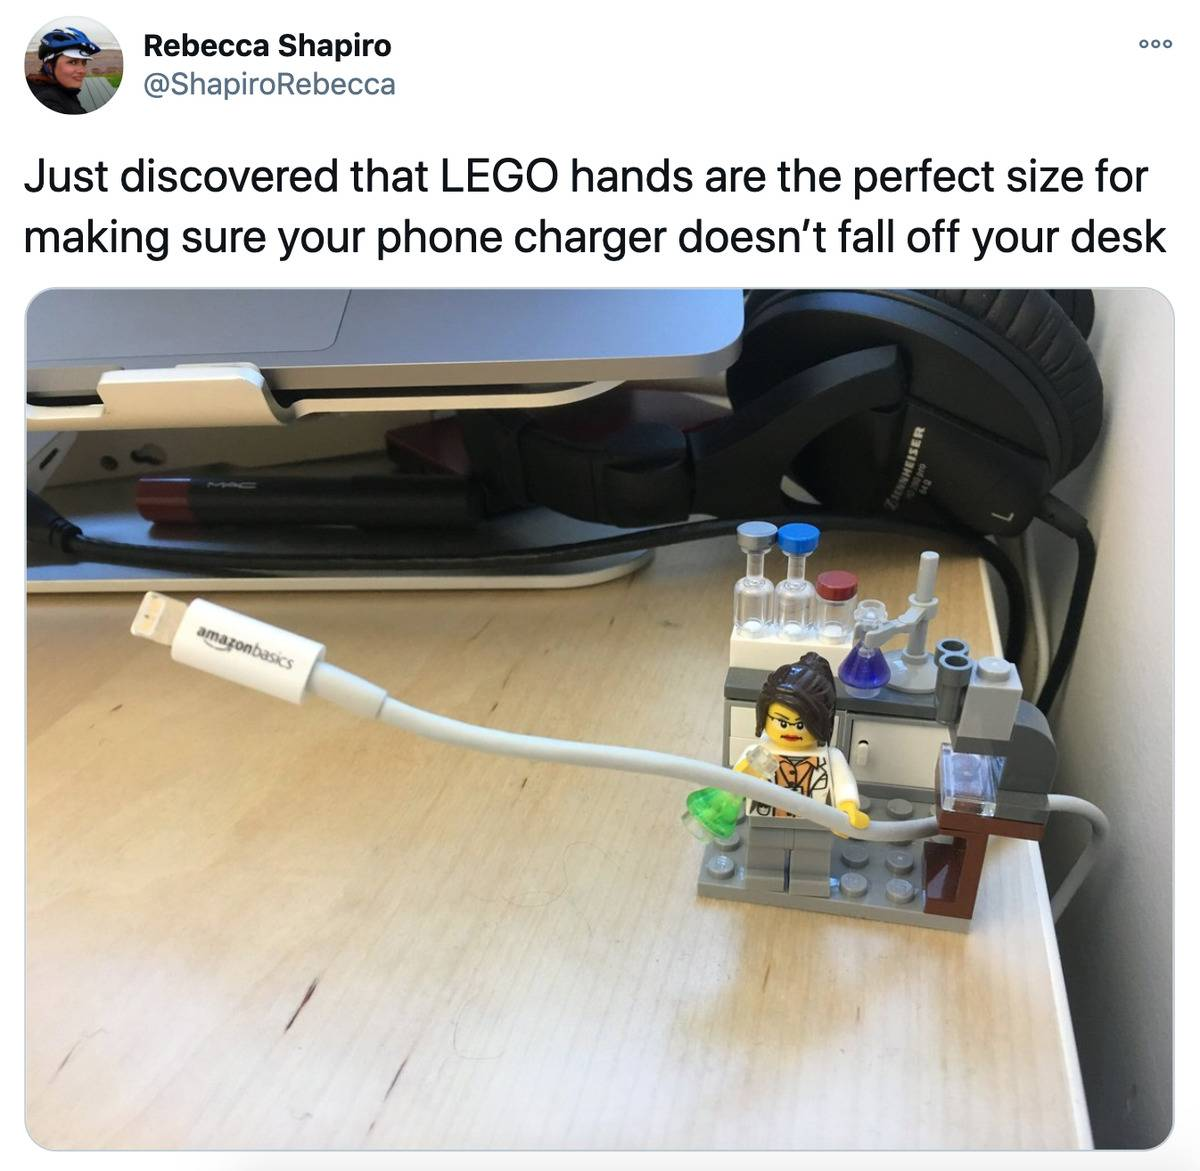 Tweet: Just discovered that LEGO hands are the perfect size for making sure your phone charger doesn't fall off your desk